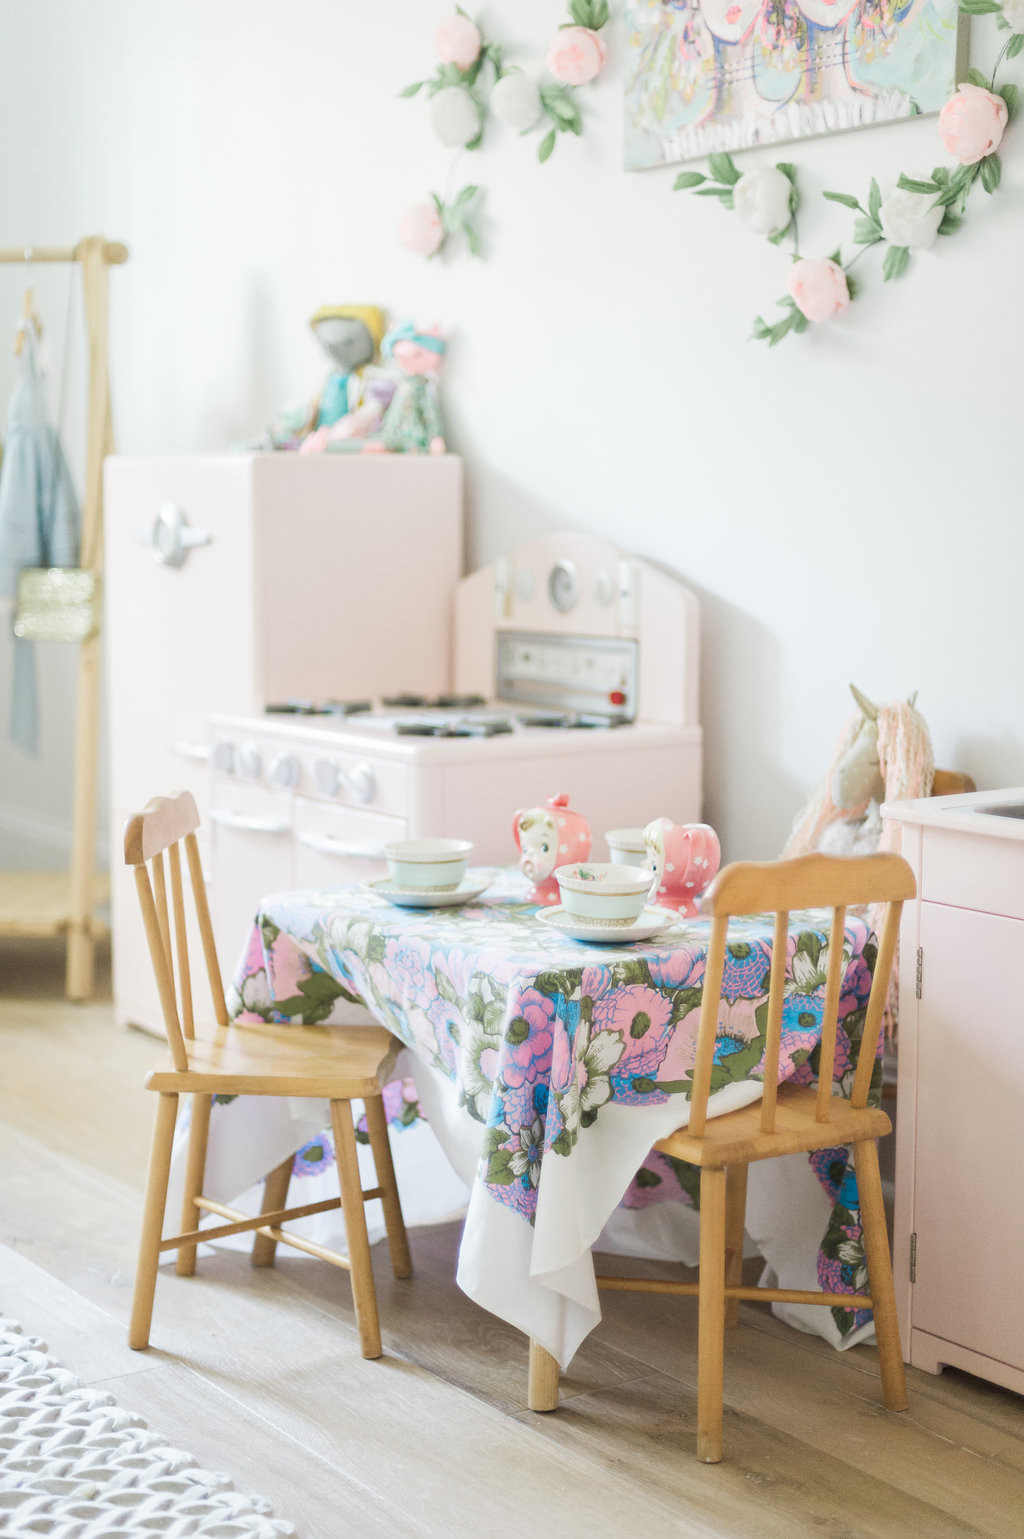 Little Girl Room Ideas with Purpose - The Leslie Style on Decorations For Girls Room  id=47307